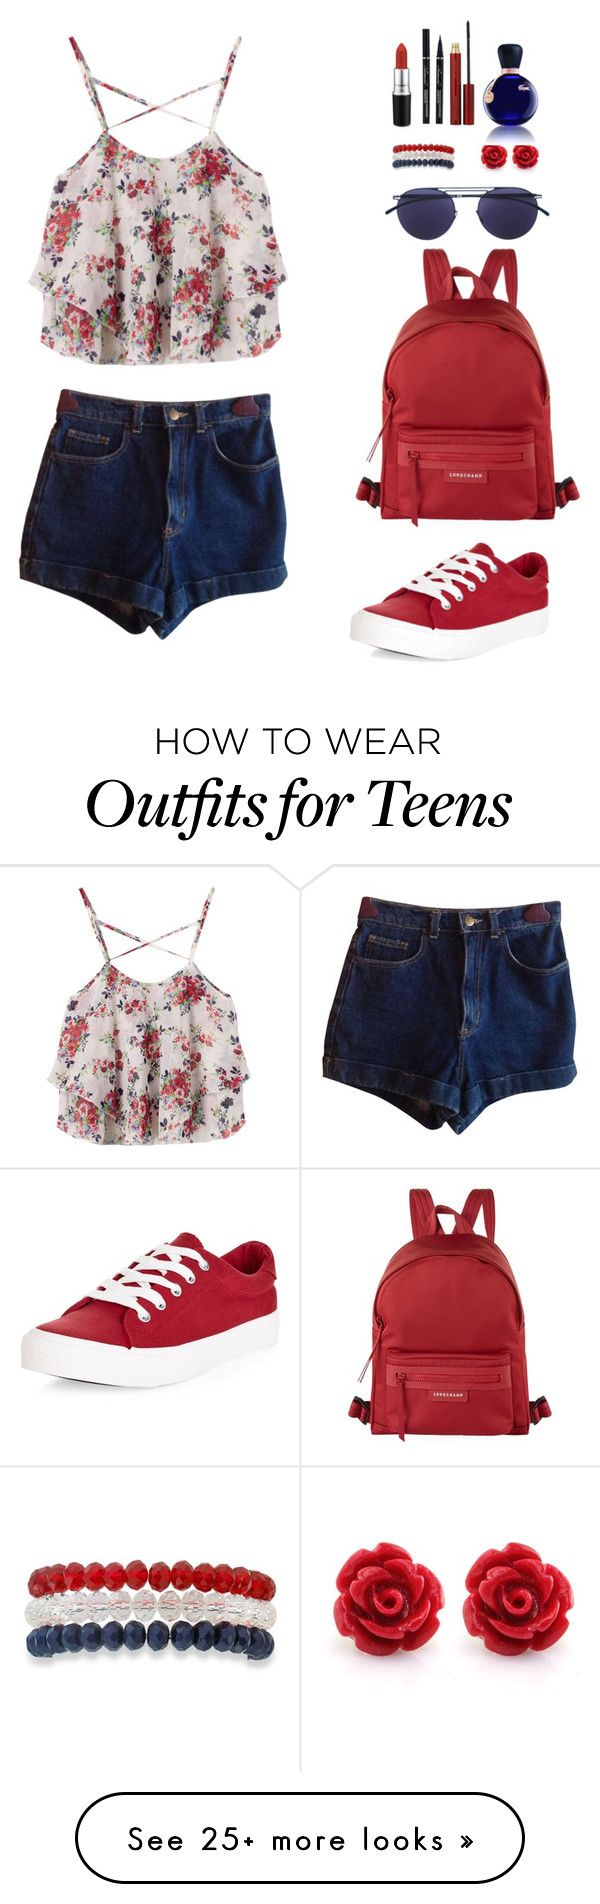 """Ruuufffflleess"" by elefeceleke on Polyvore featuring American Apparel, New Look, Longchamp, Mykita, Kim Rogers, MAC Cosmetics, Kevyn Aucoin, Lacoste and ruffles"